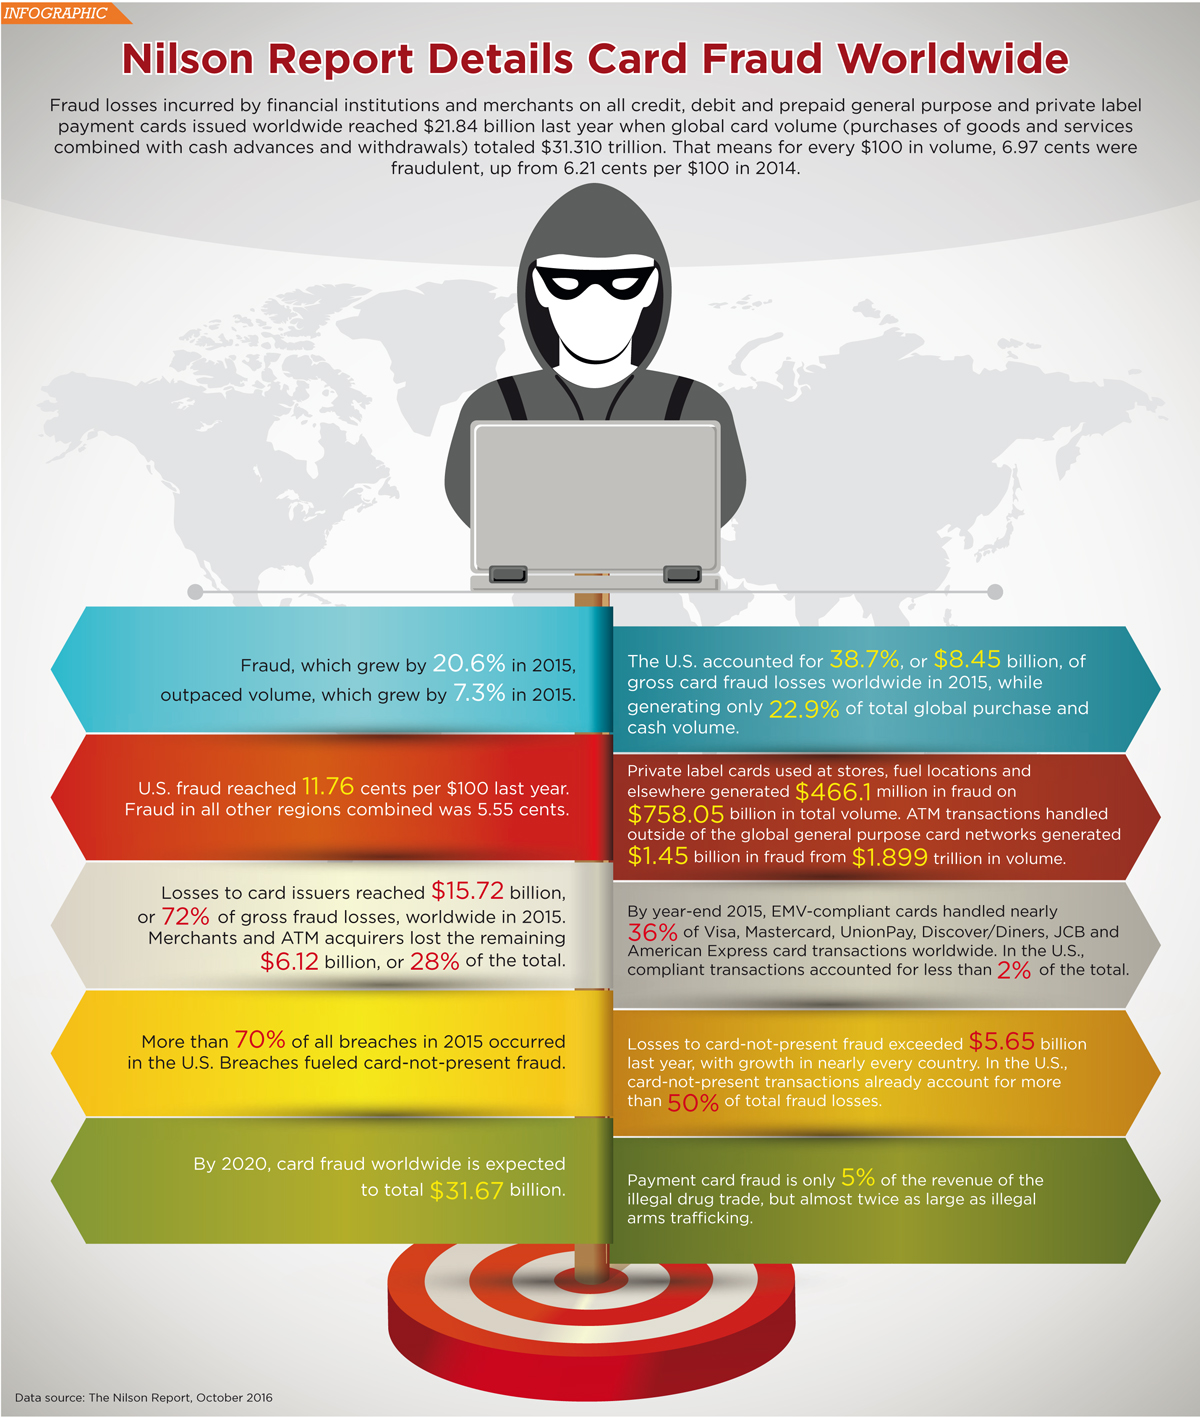 Card Fraud Worldwide Infographic Credit Union Times